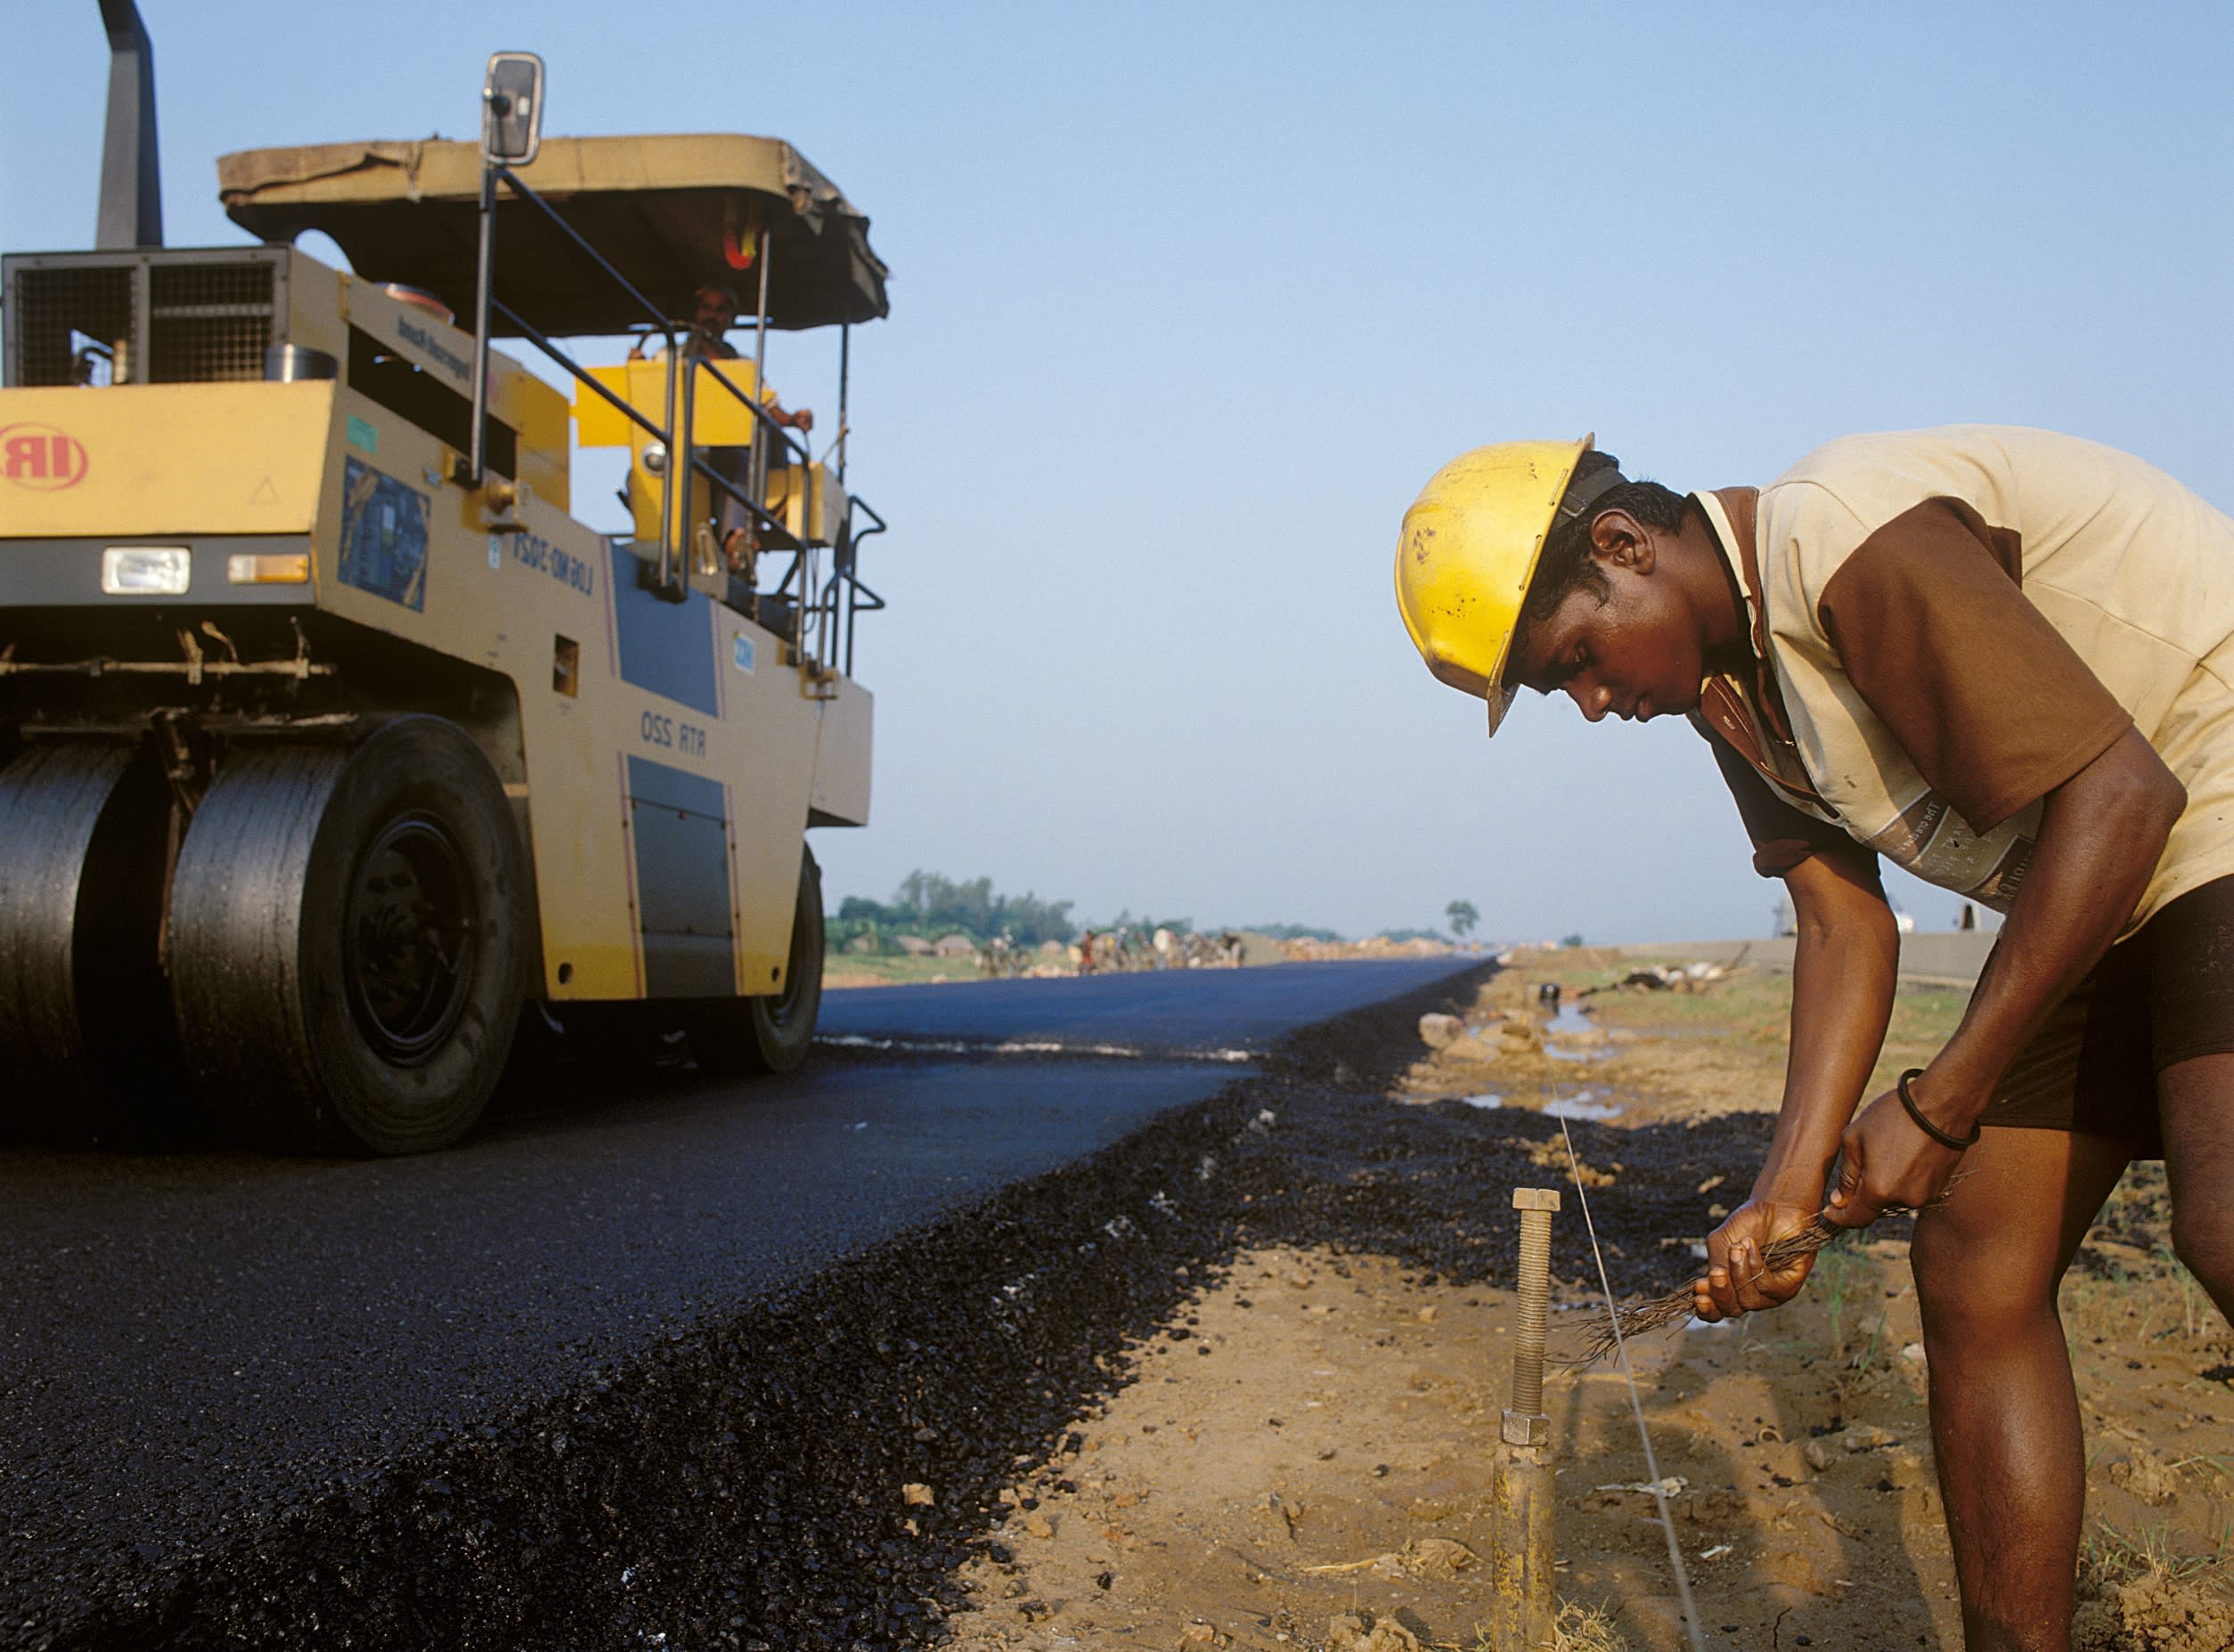 New policies accelerate India's road development - Nikkei Asian Review